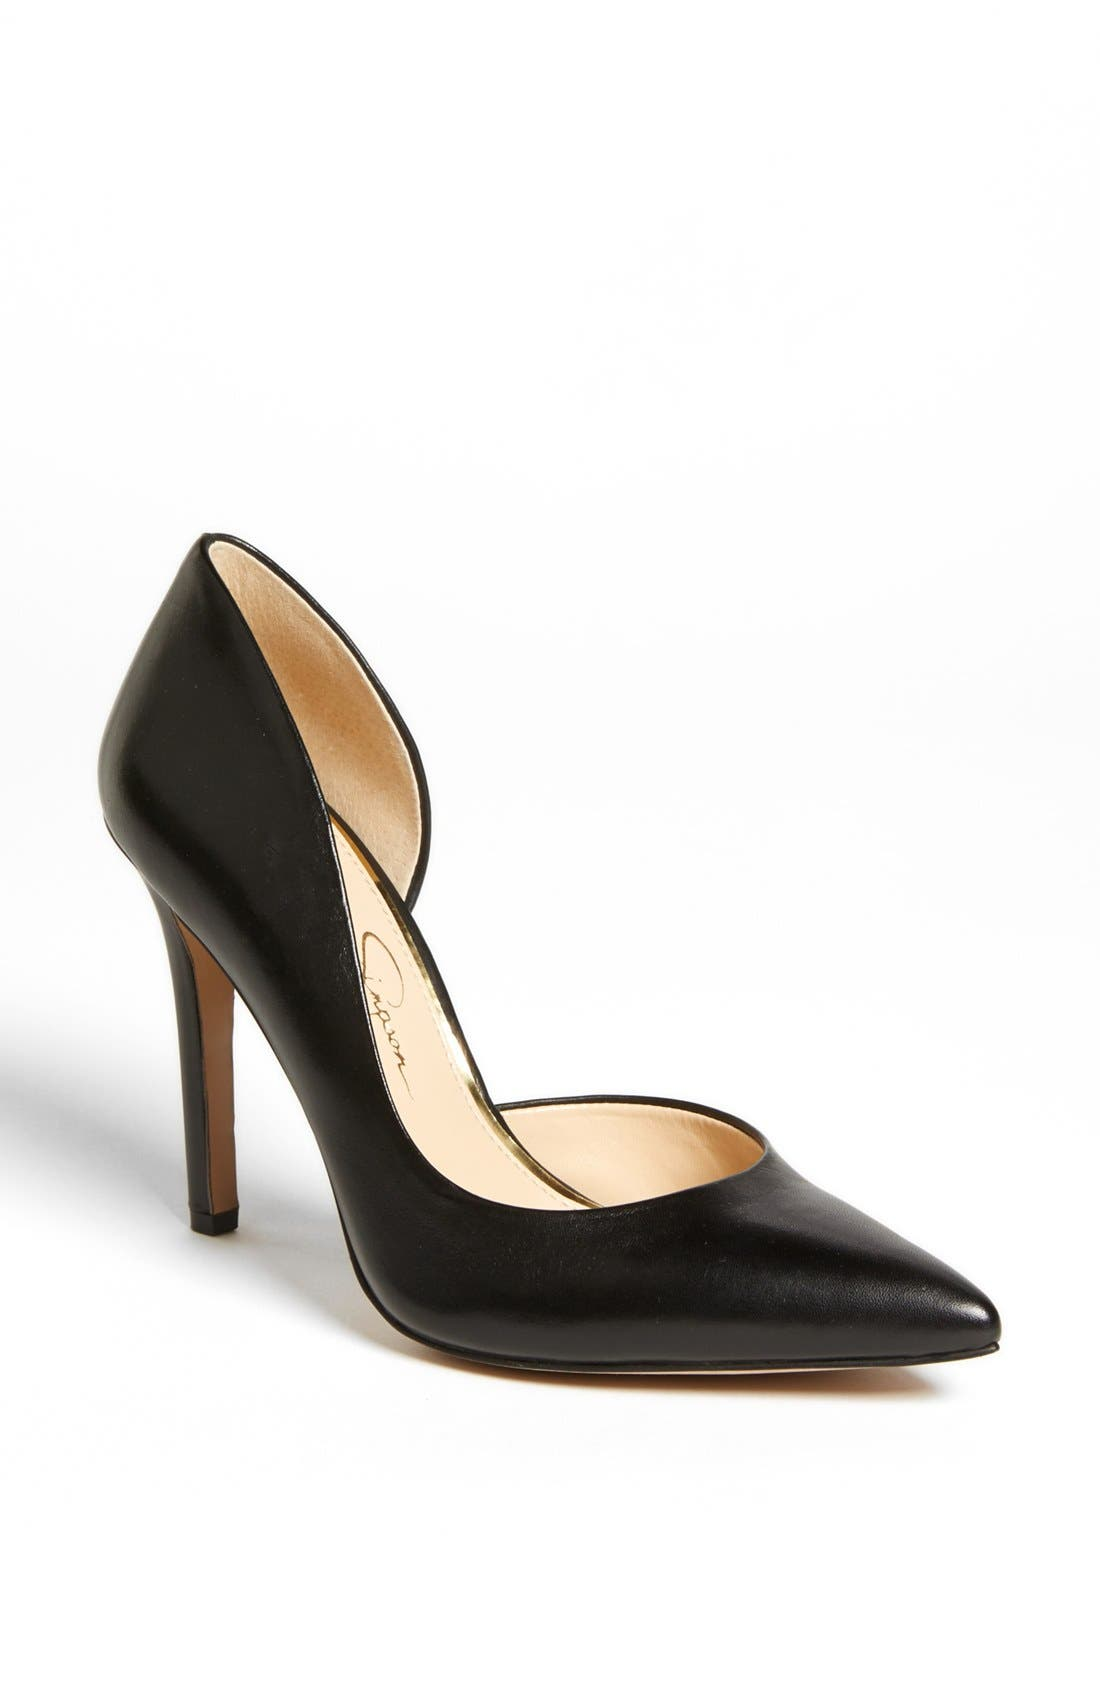 JESSICA SIMPSON,                             'Claudette' Half d'Orsay Pump,                             Main thumbnail 1, color,                             001